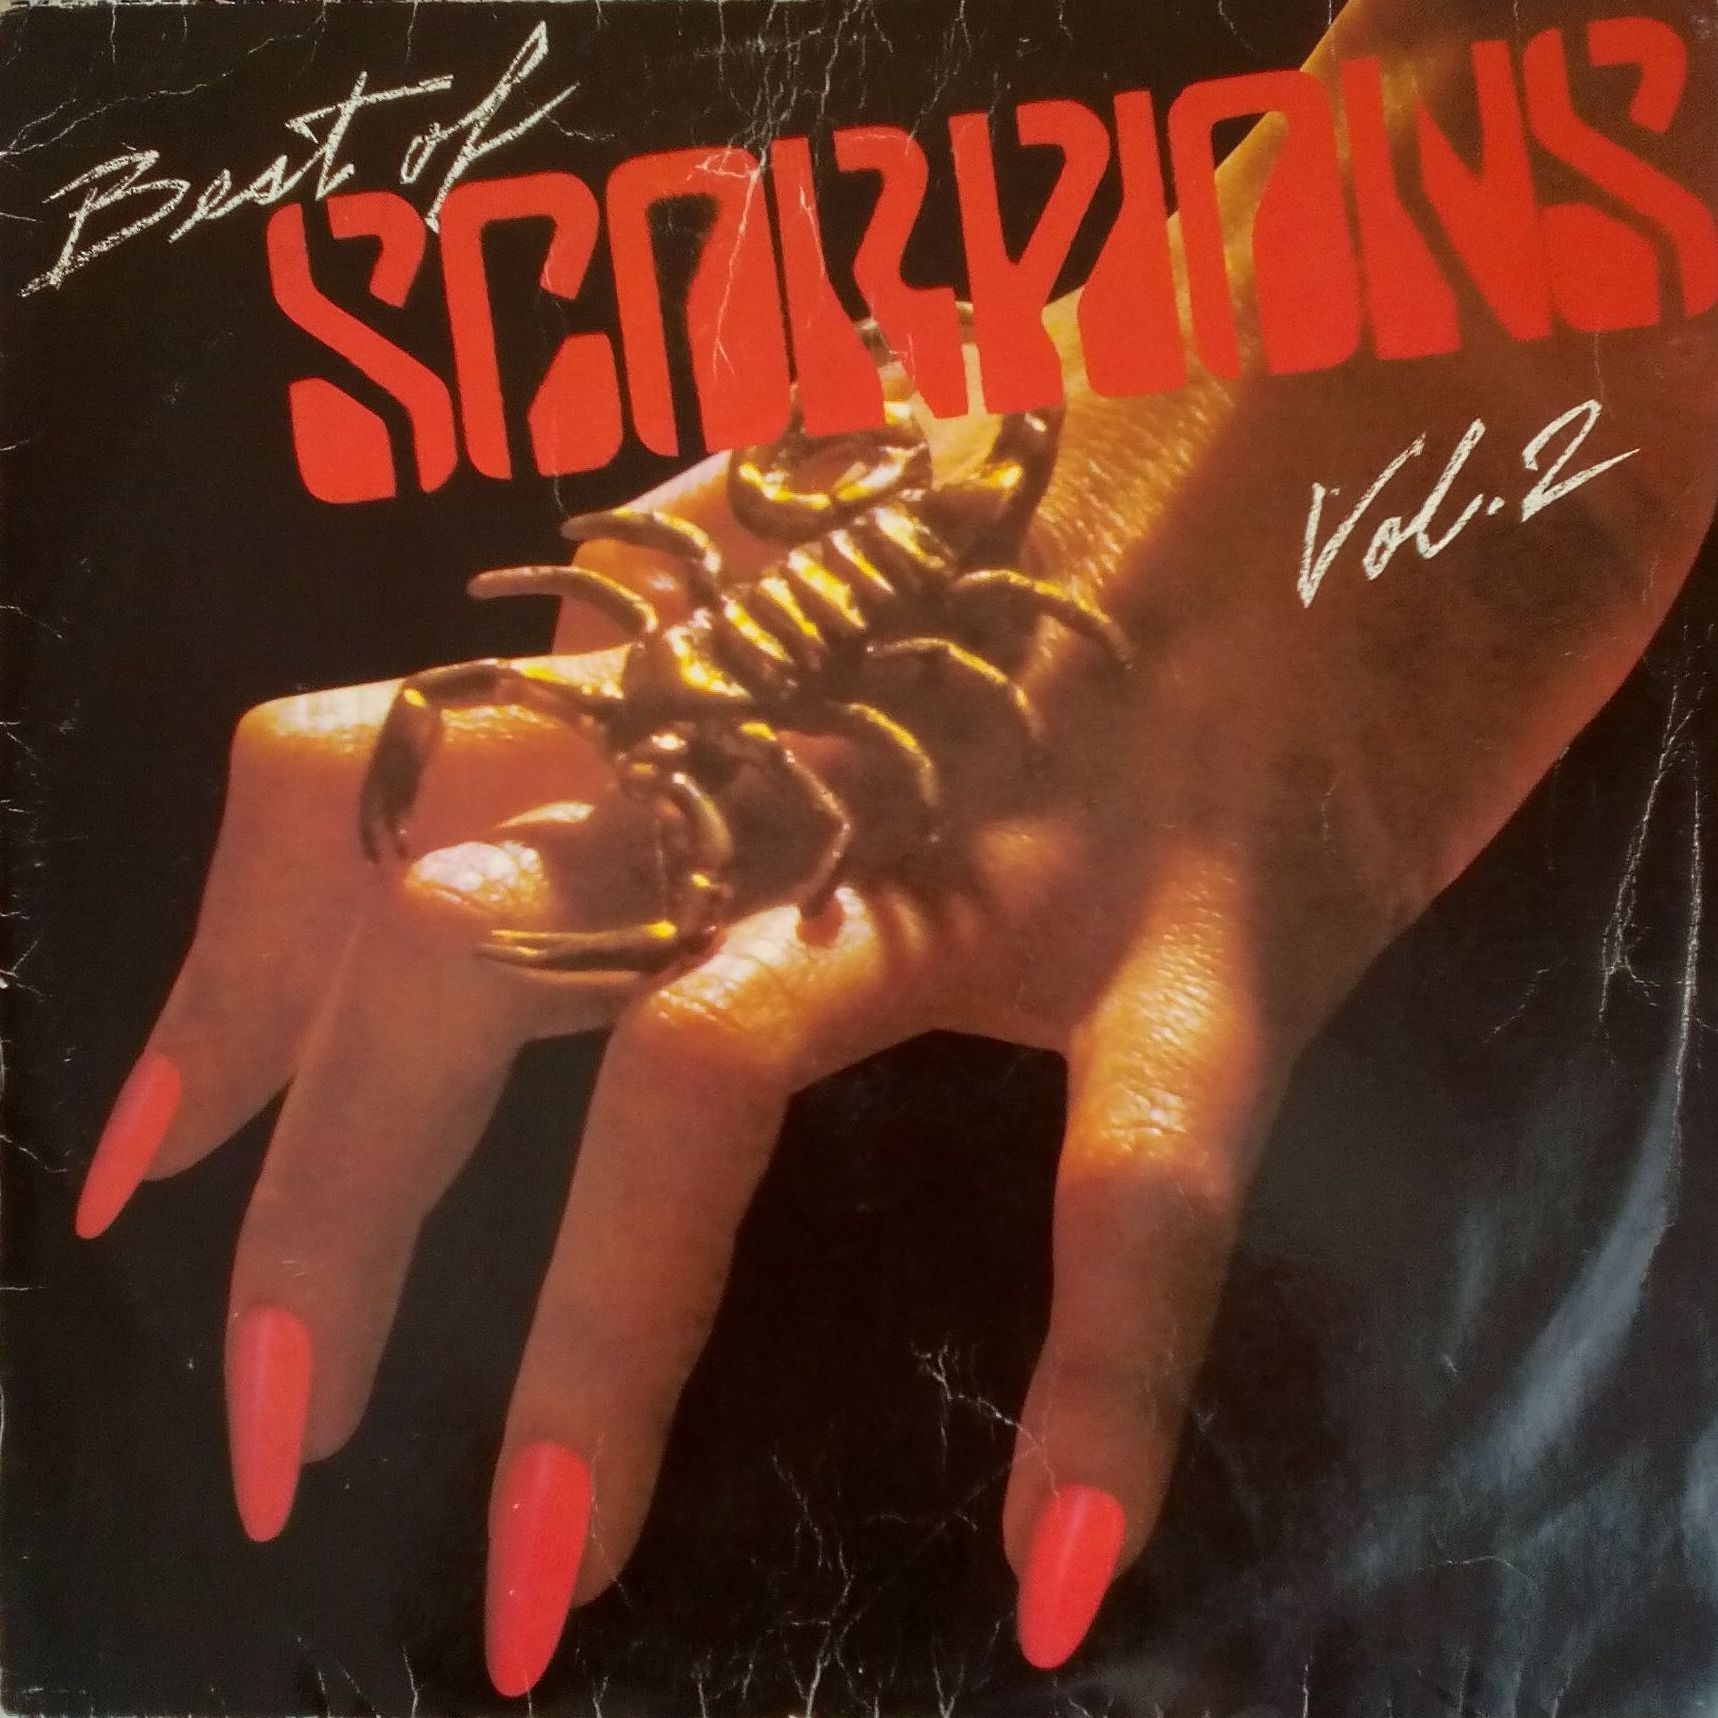 Best of Scorpions Vol.2